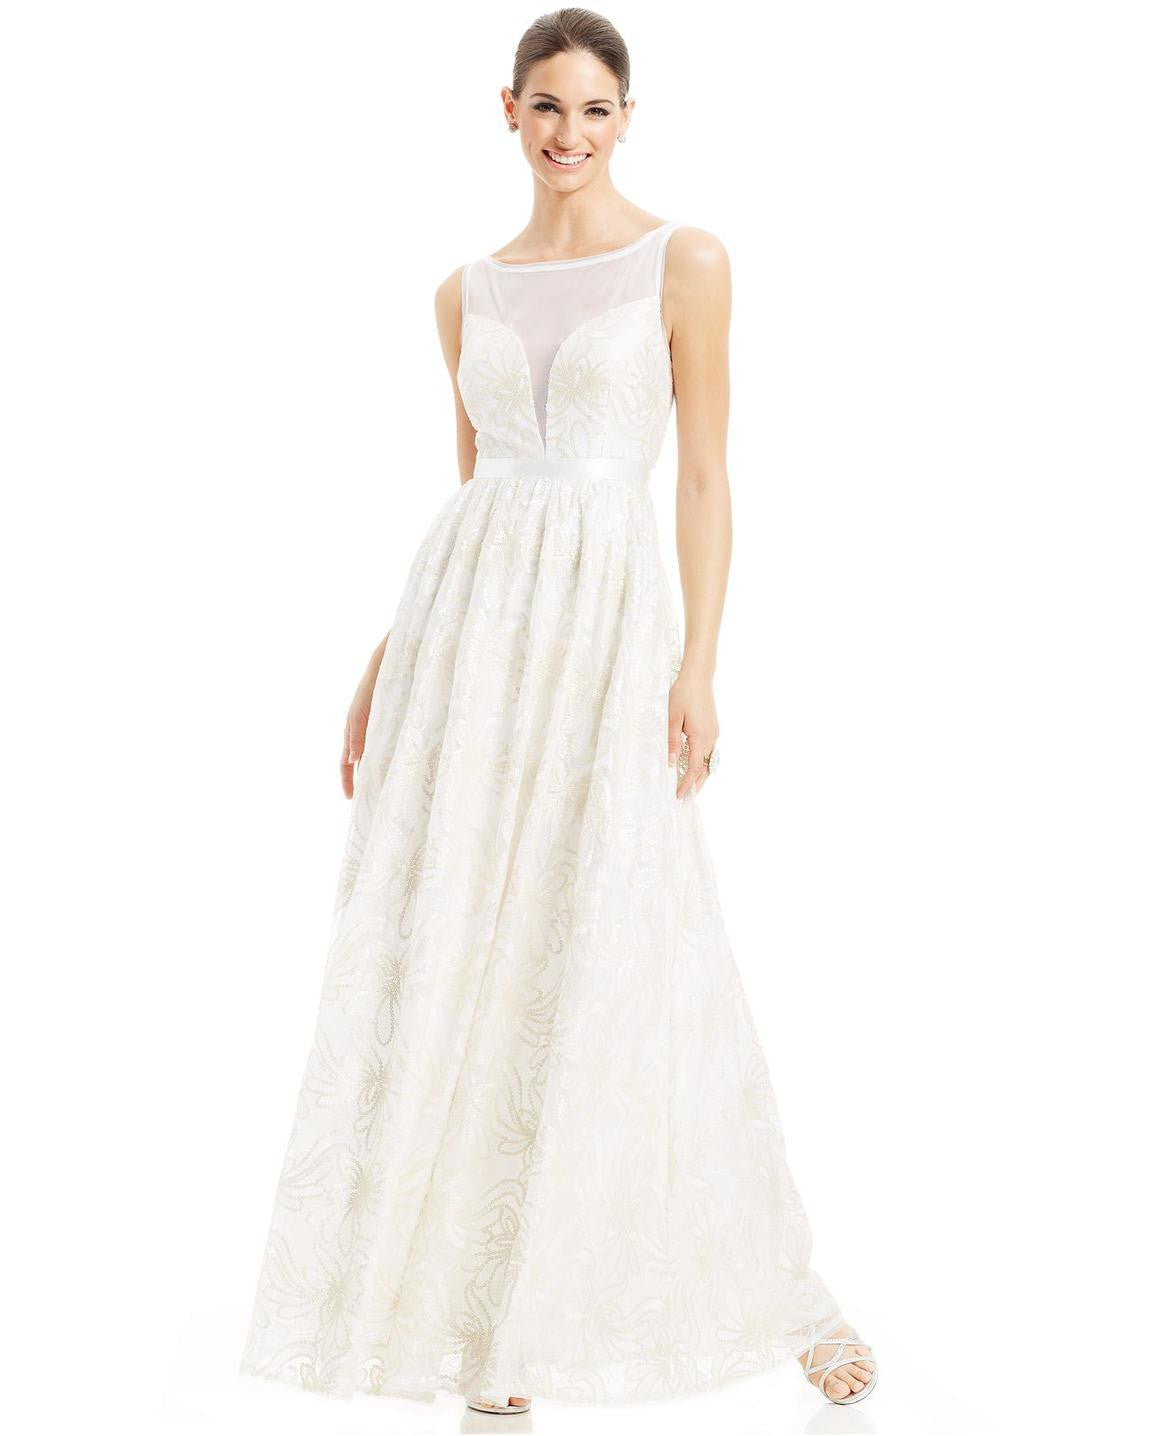 Adrianna Papell Sleeveless Illusion Sequin Lace Wedding Gown